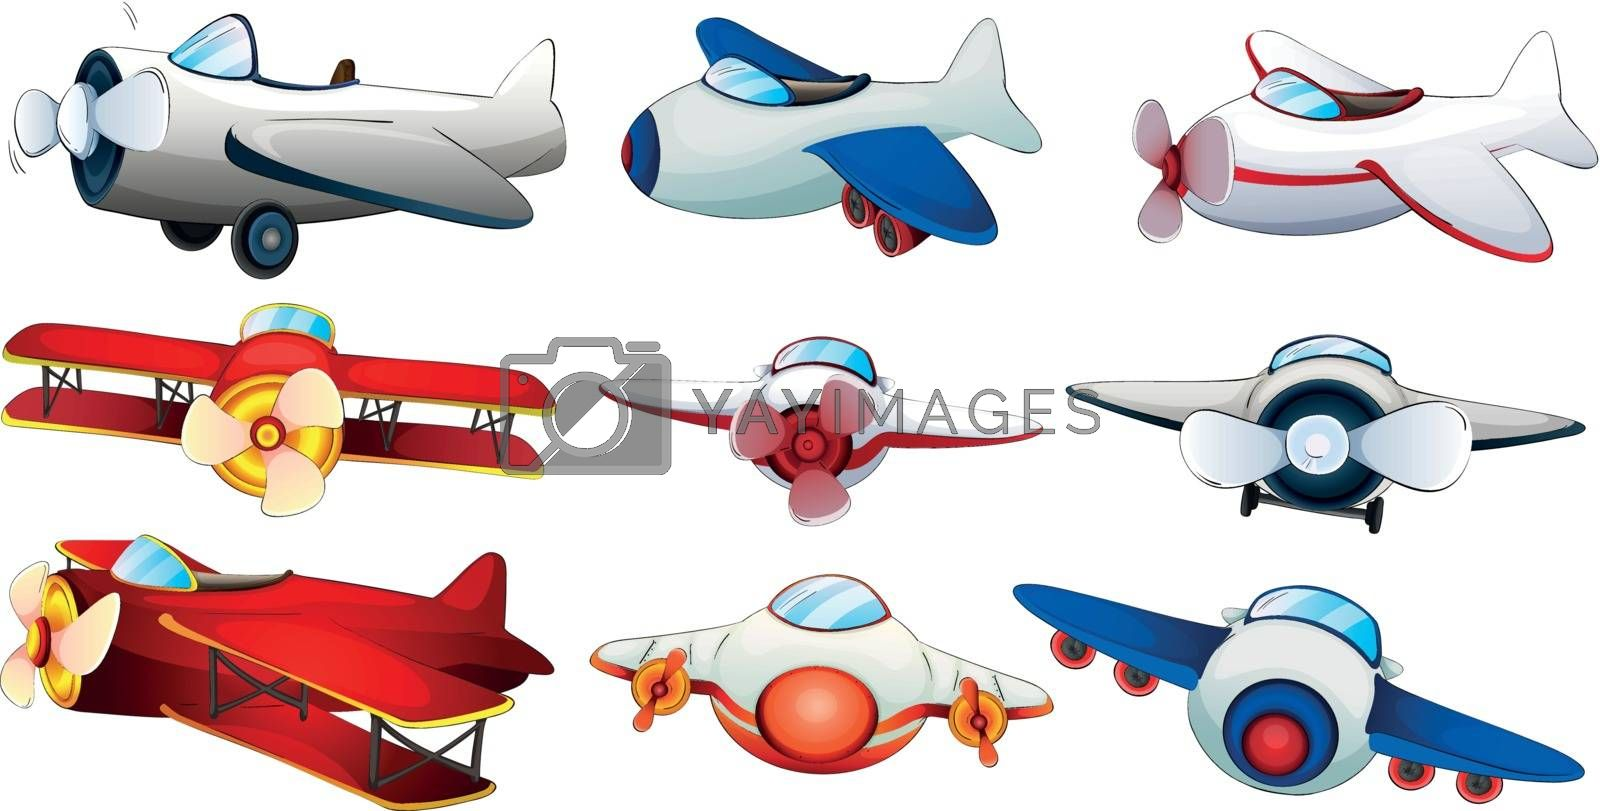 Illustration of the different plane designs on a white background